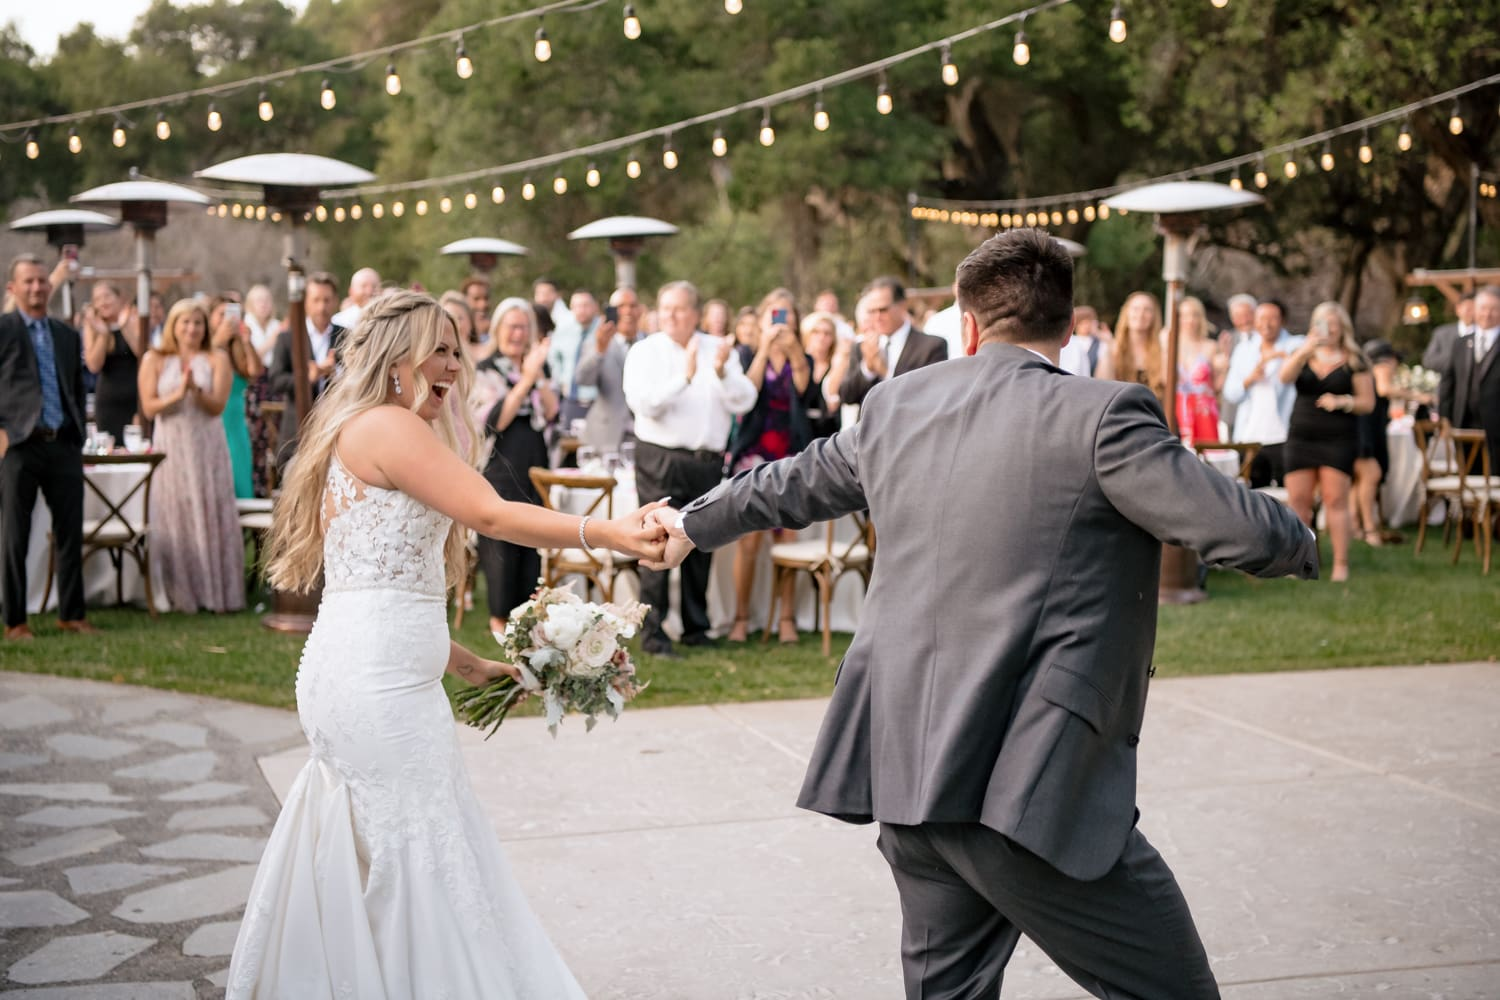 Couples grand entrance at The Stone House wedding venue